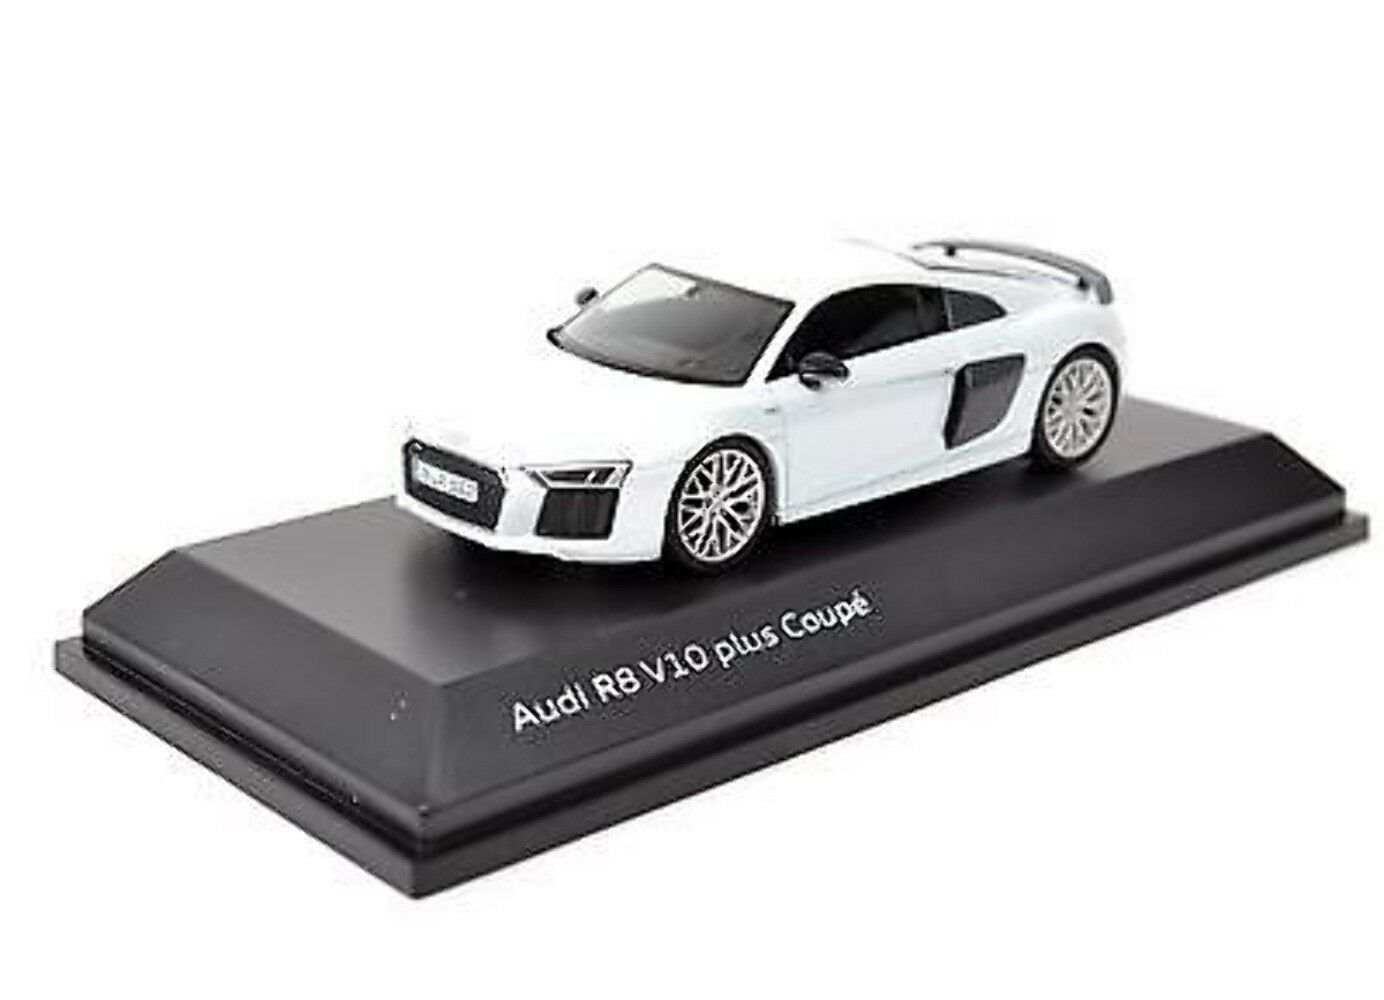 Audi R8 V10 Plus Coupe,Suzukagrey,1 43 5011518413